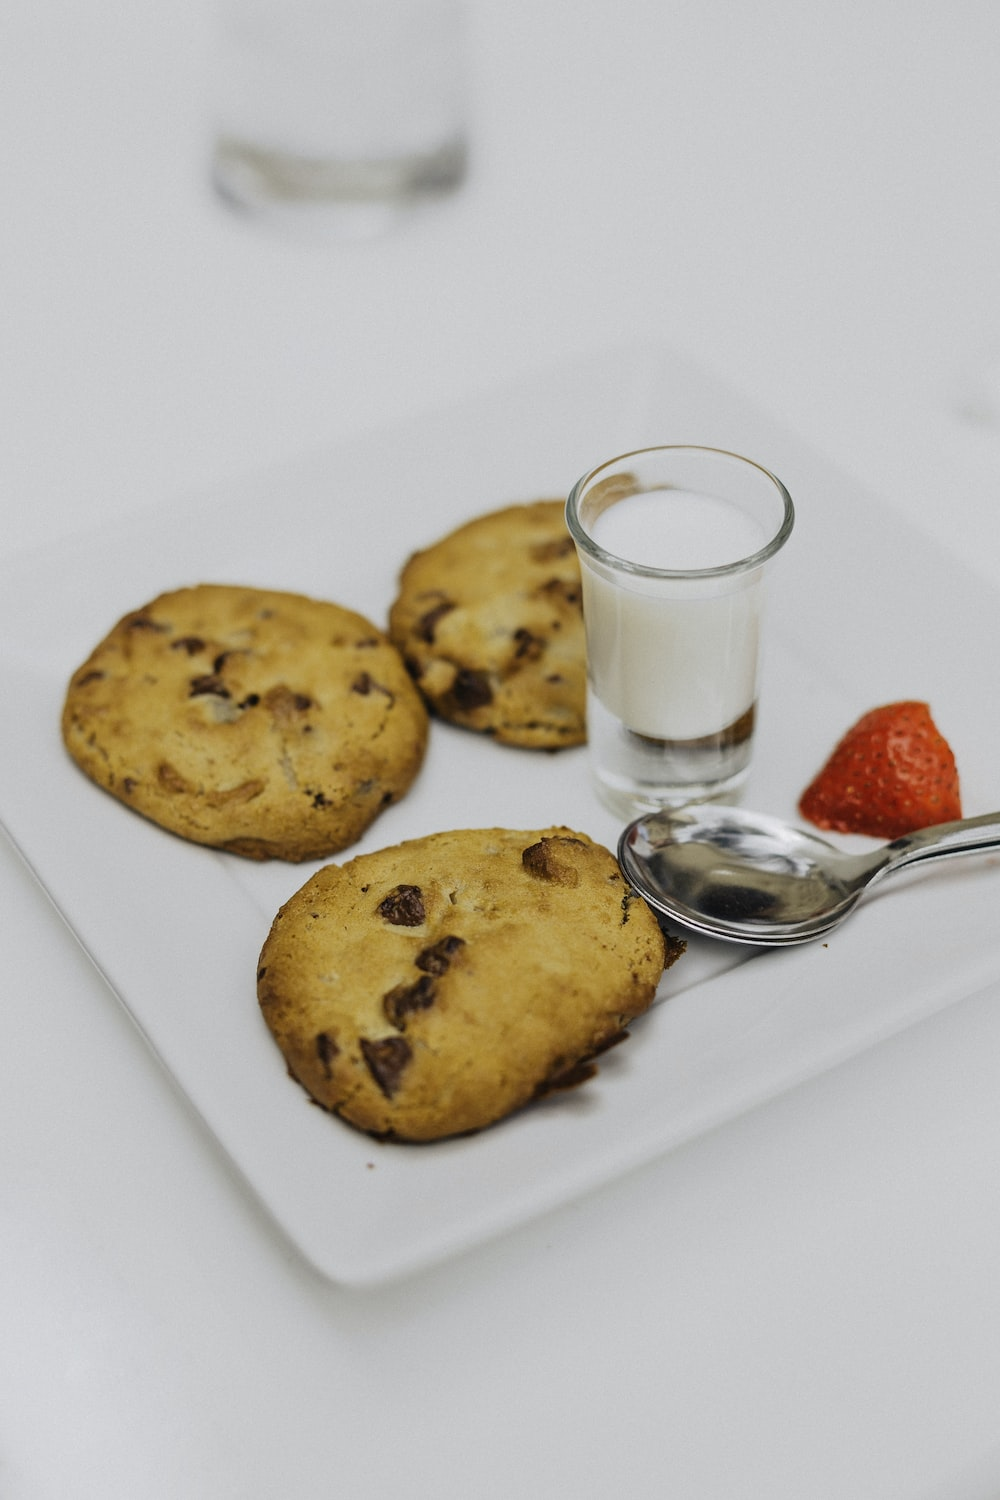 three baked cookies on plate